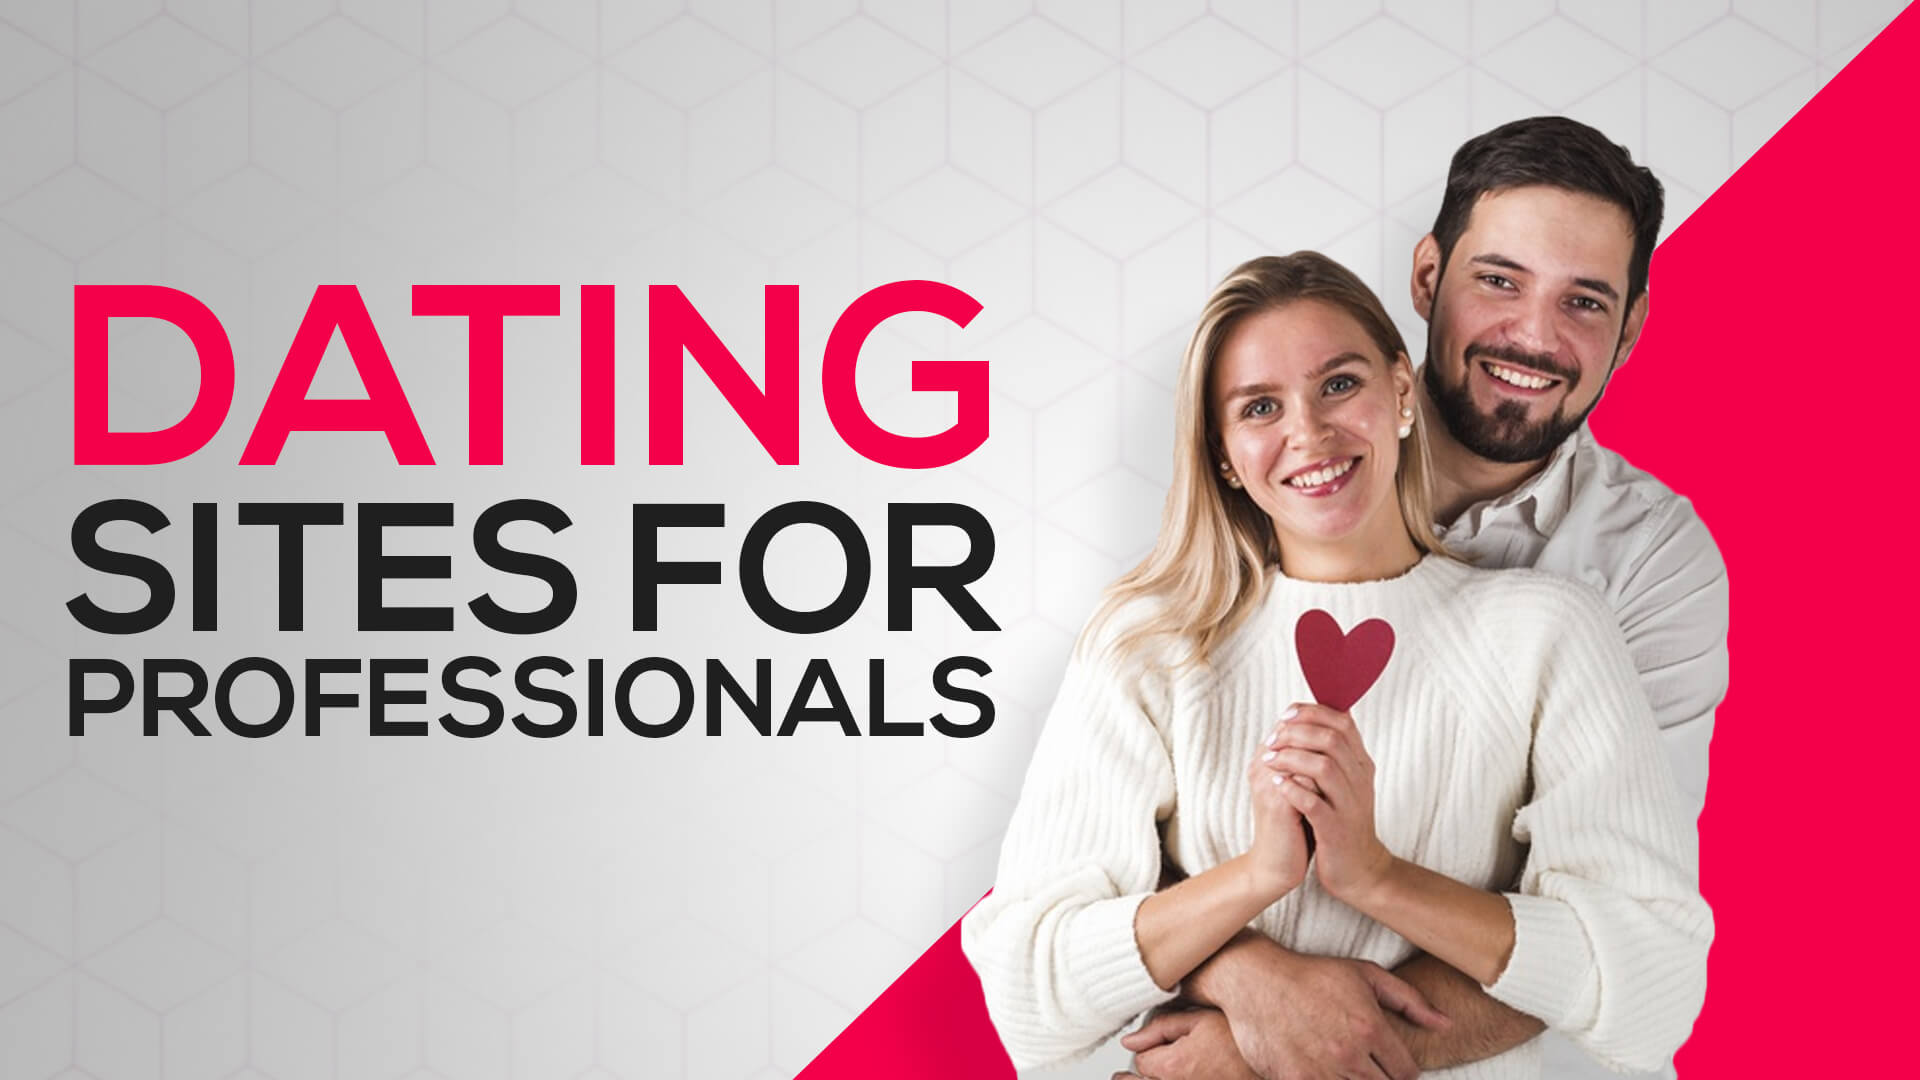 Dating Sites for Professionals